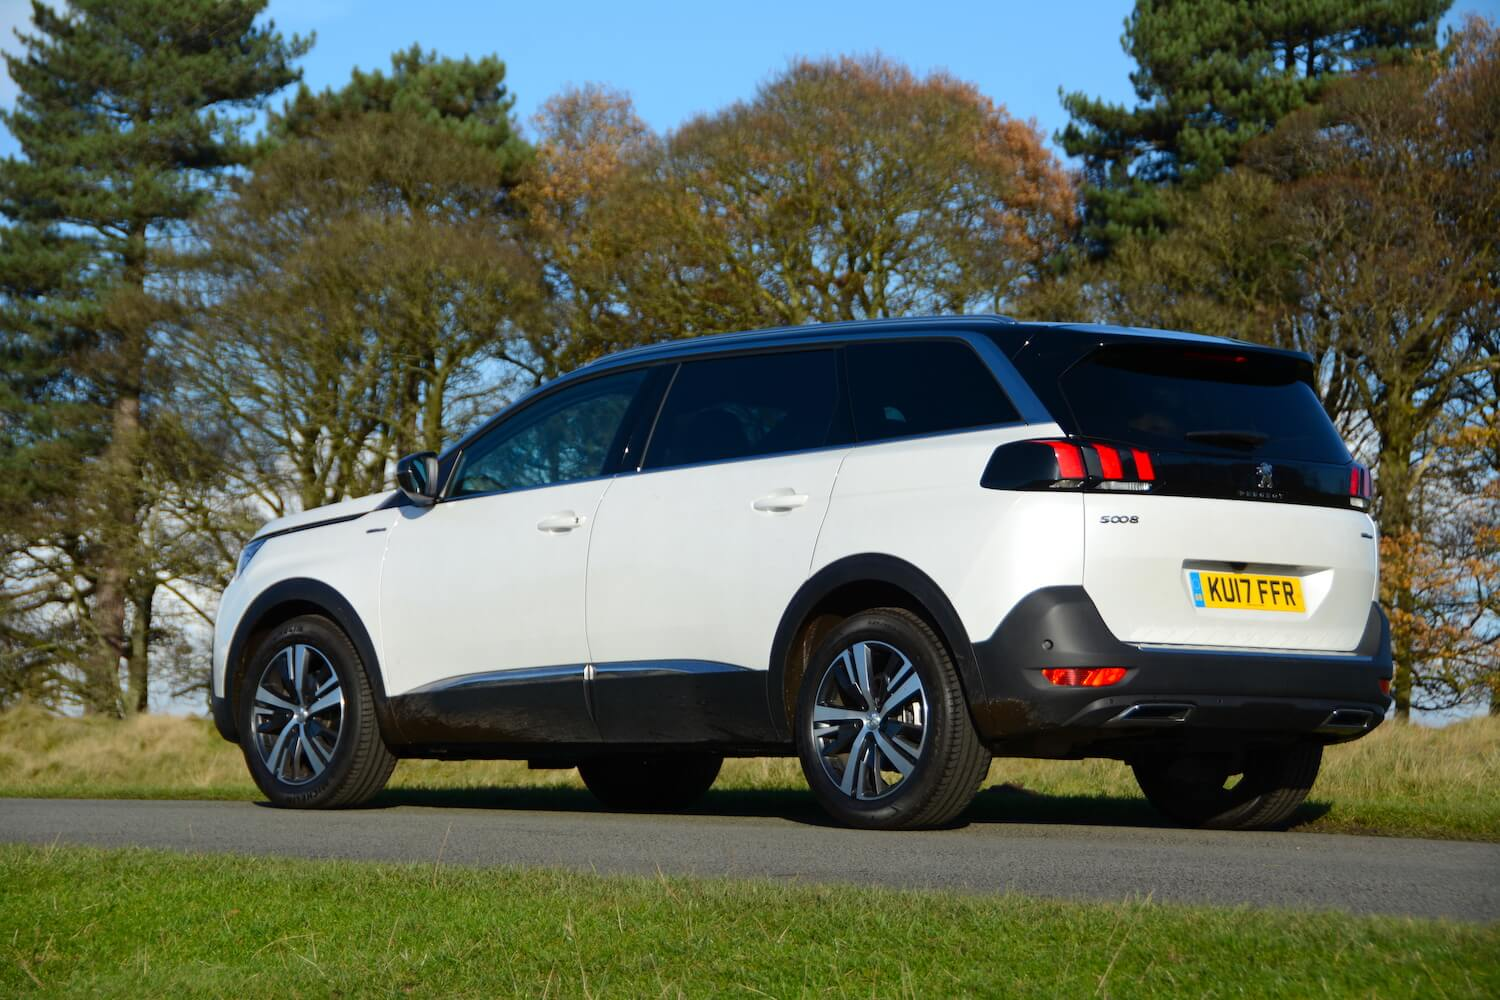 Steering Wheel Cleaner >> Peugeot 5008 REVIEW - GreenCarGuide.co.uk